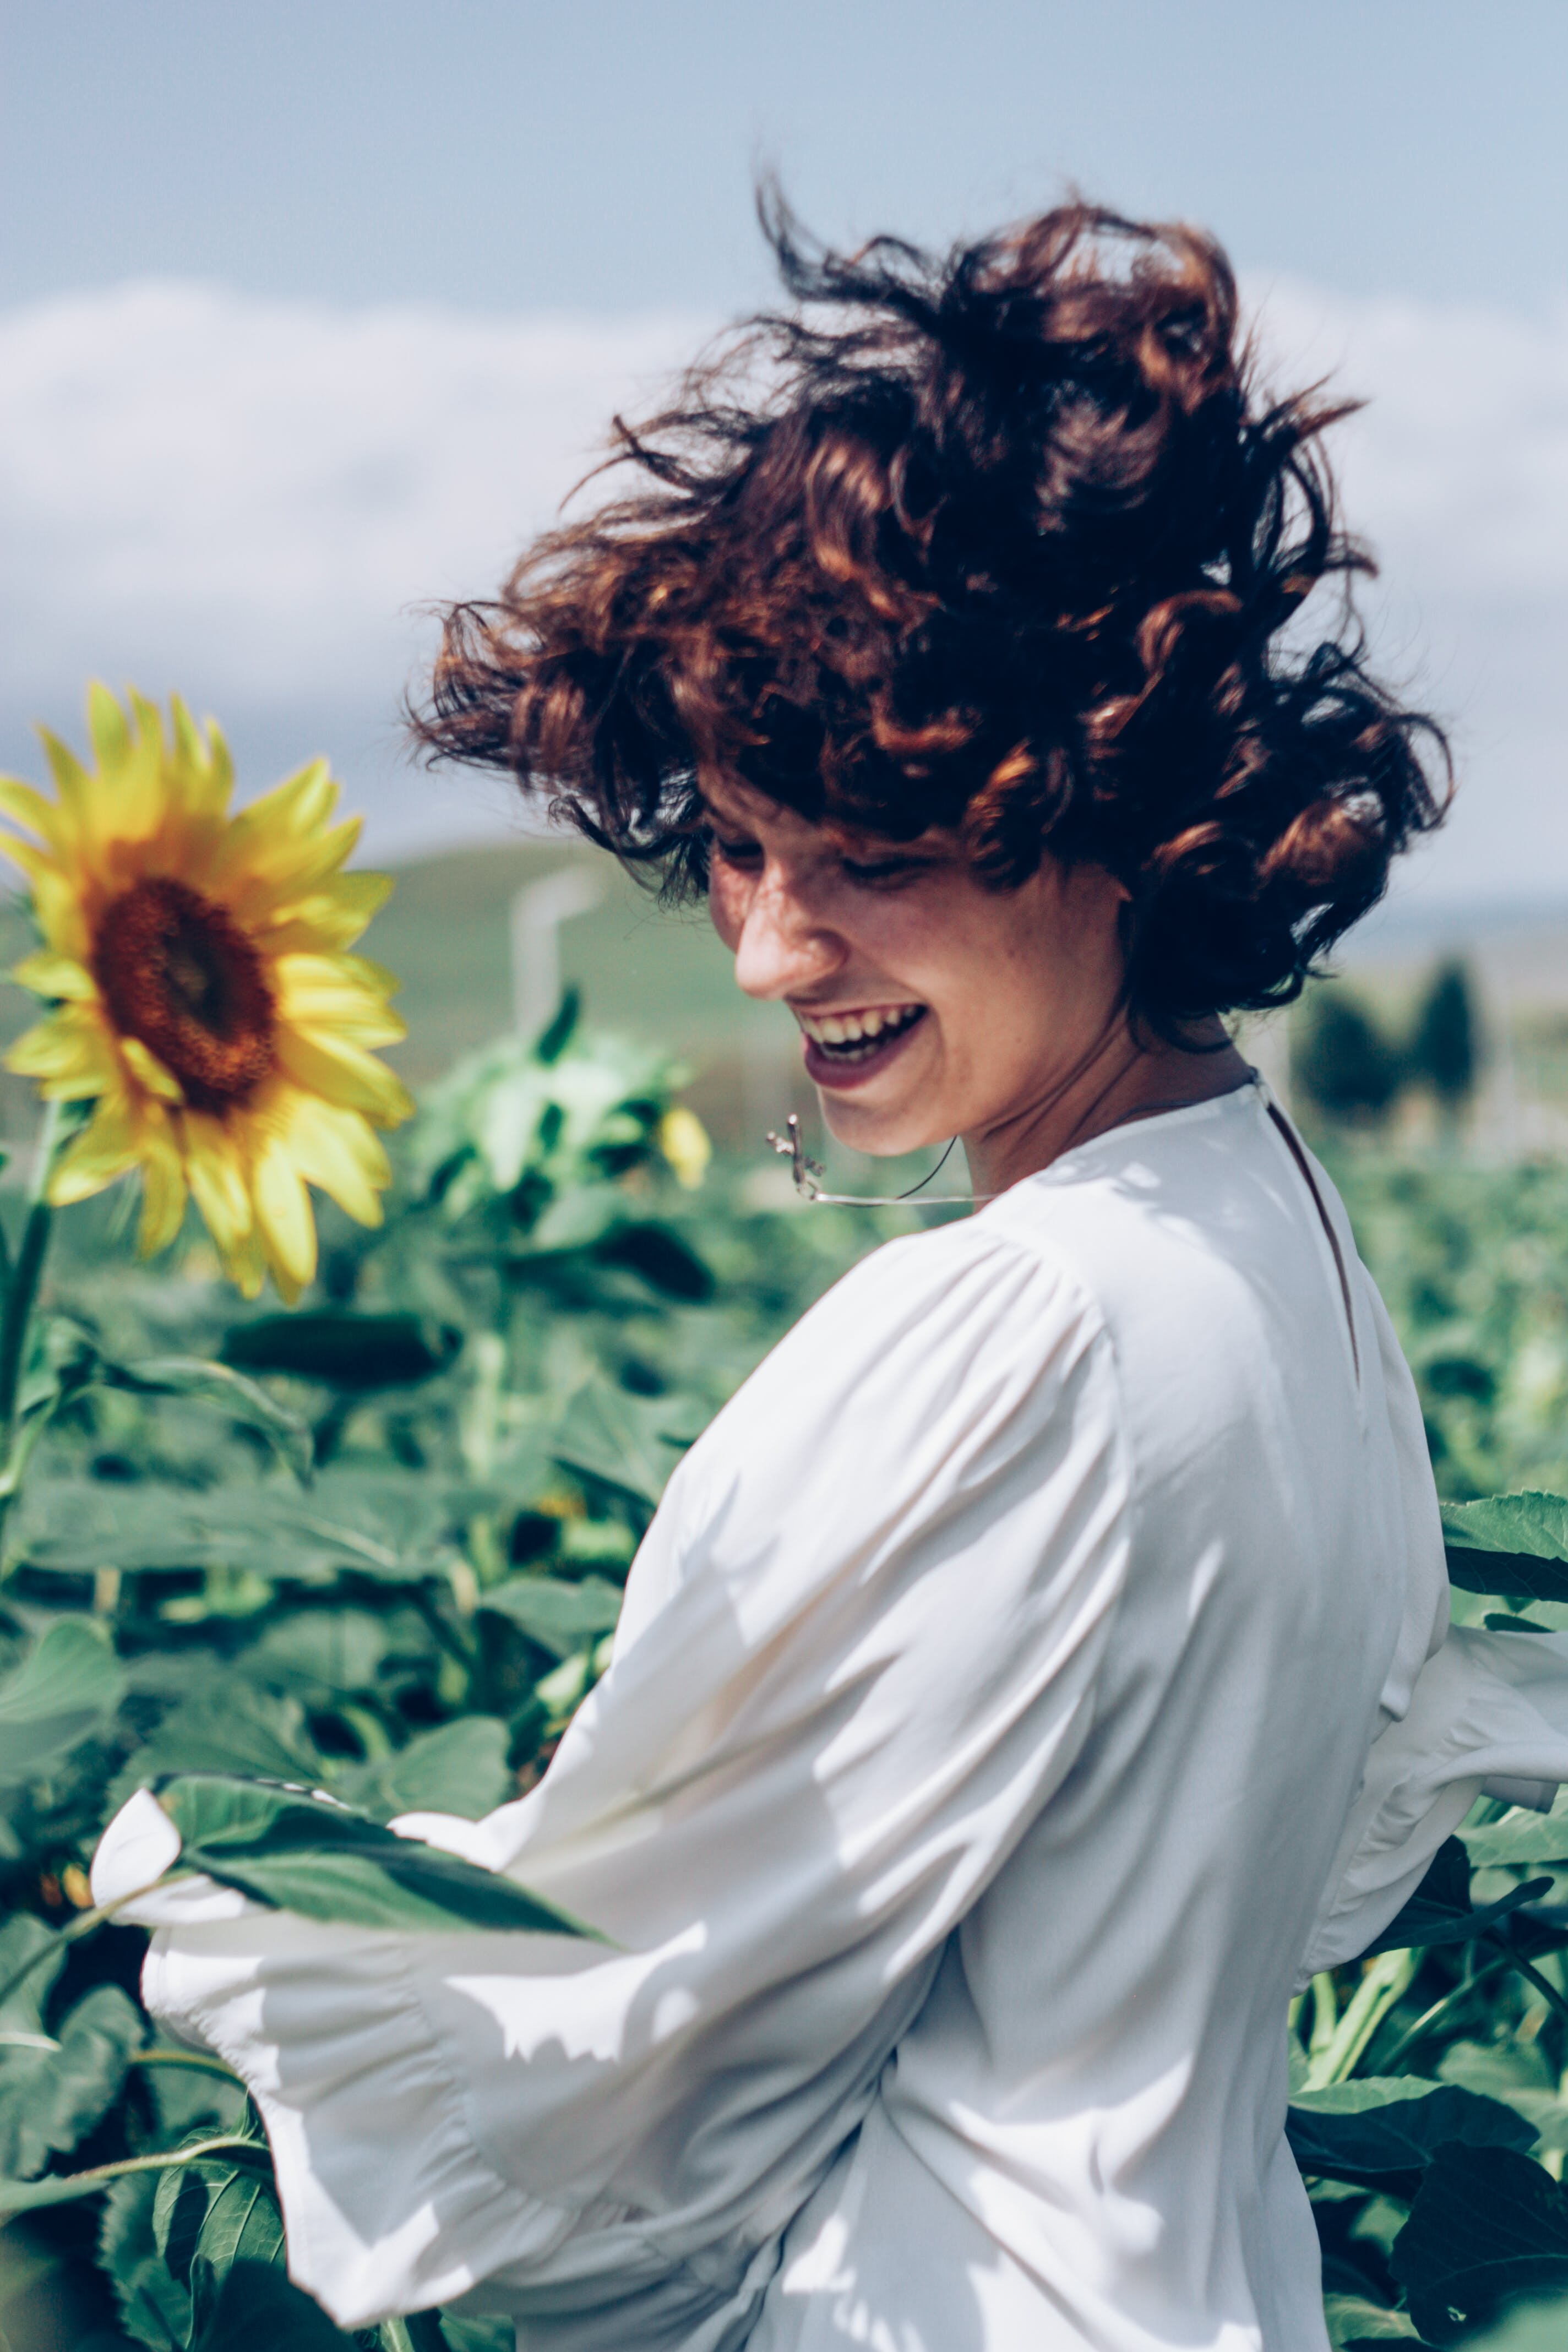 Woman Smiling at Field of Sunflowers